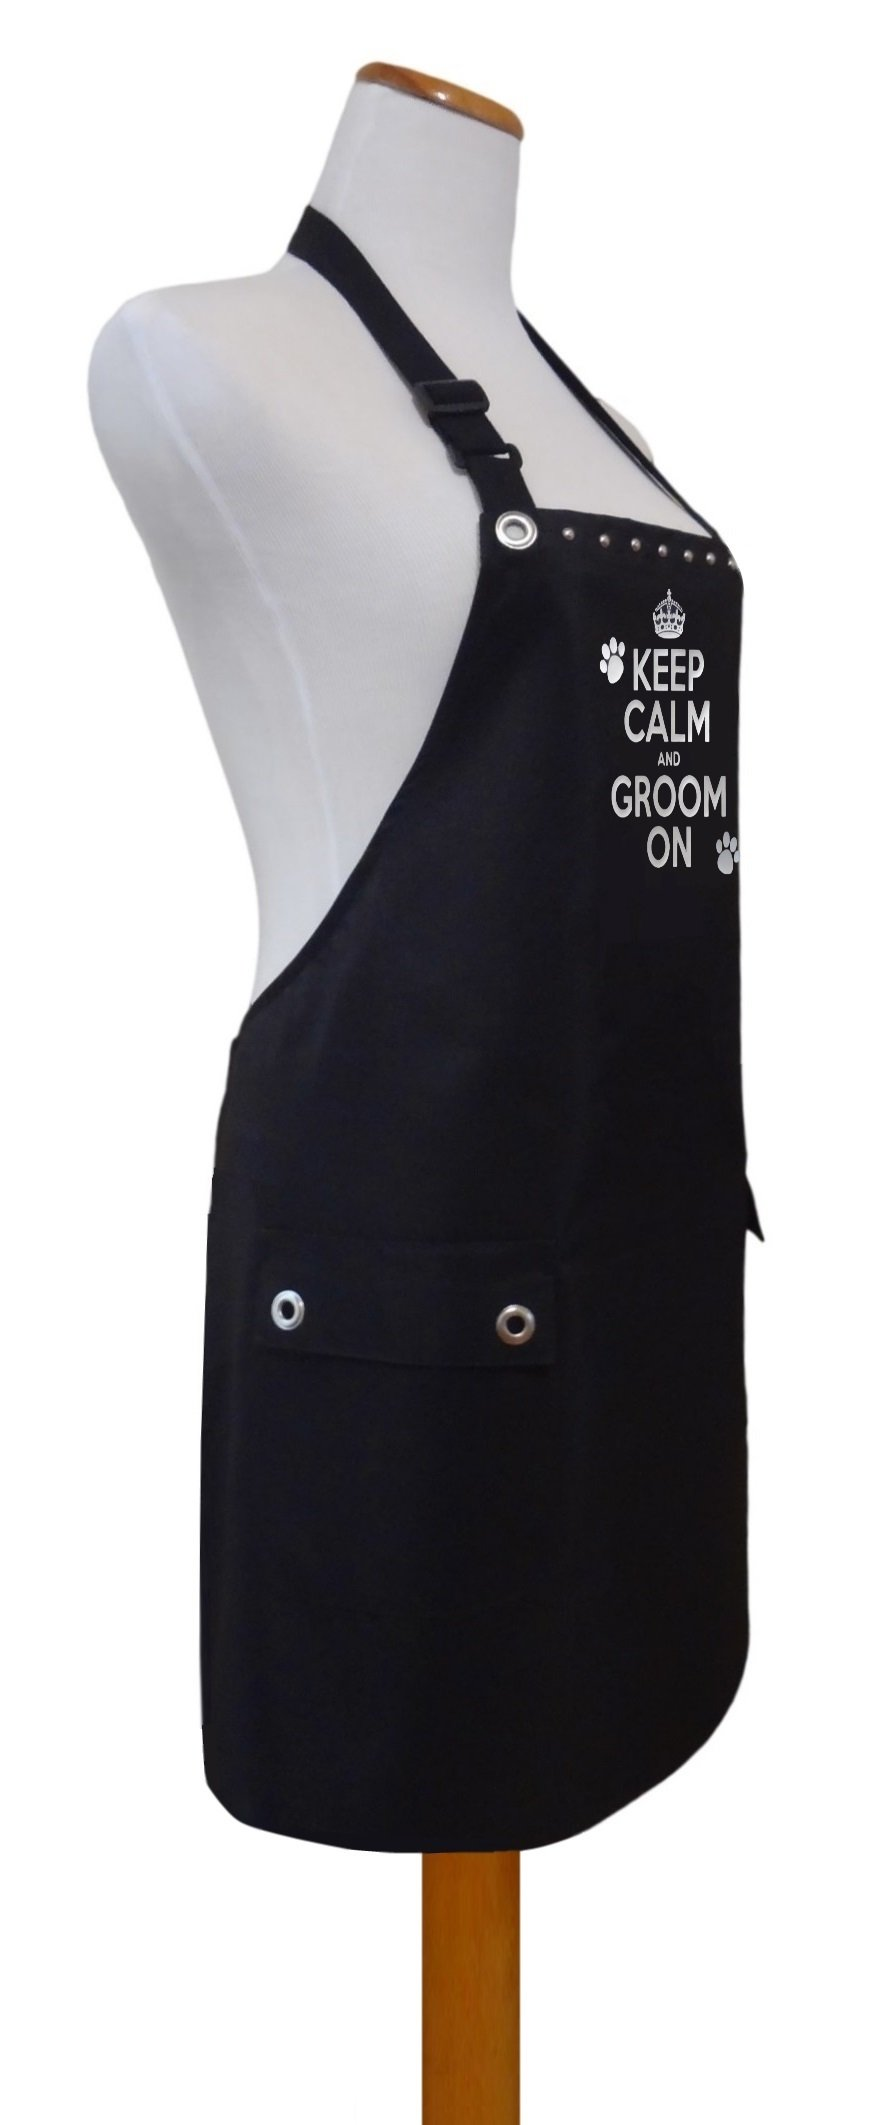 Trendy Salon Aprons Waterproof Pet Dog Grooming Groomers Apron, Keep Calm Groom On (Silver) by Trendy Salon Aprons